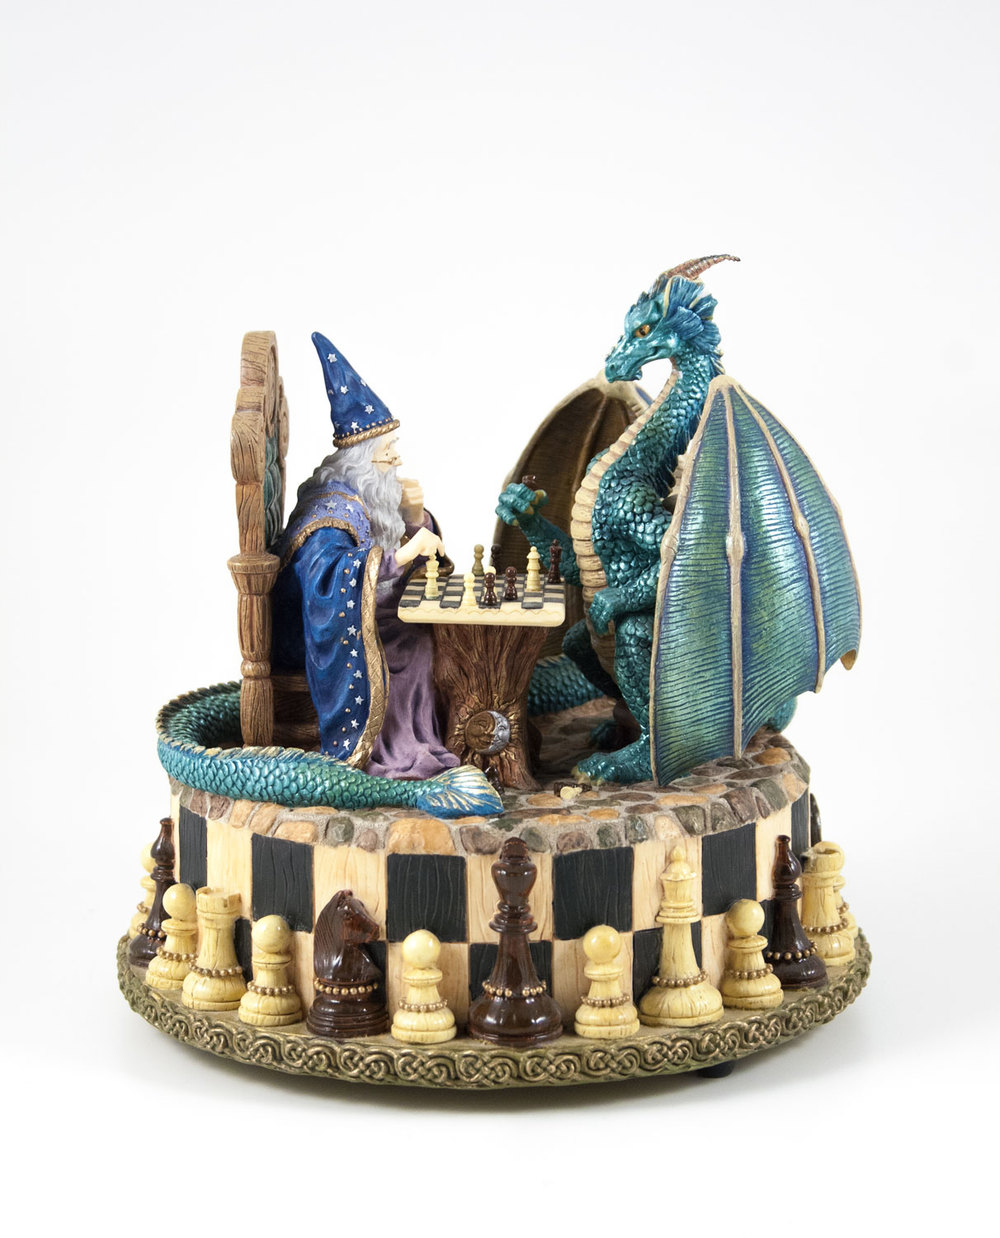 merlin-dragon-chess-figurine.jpg